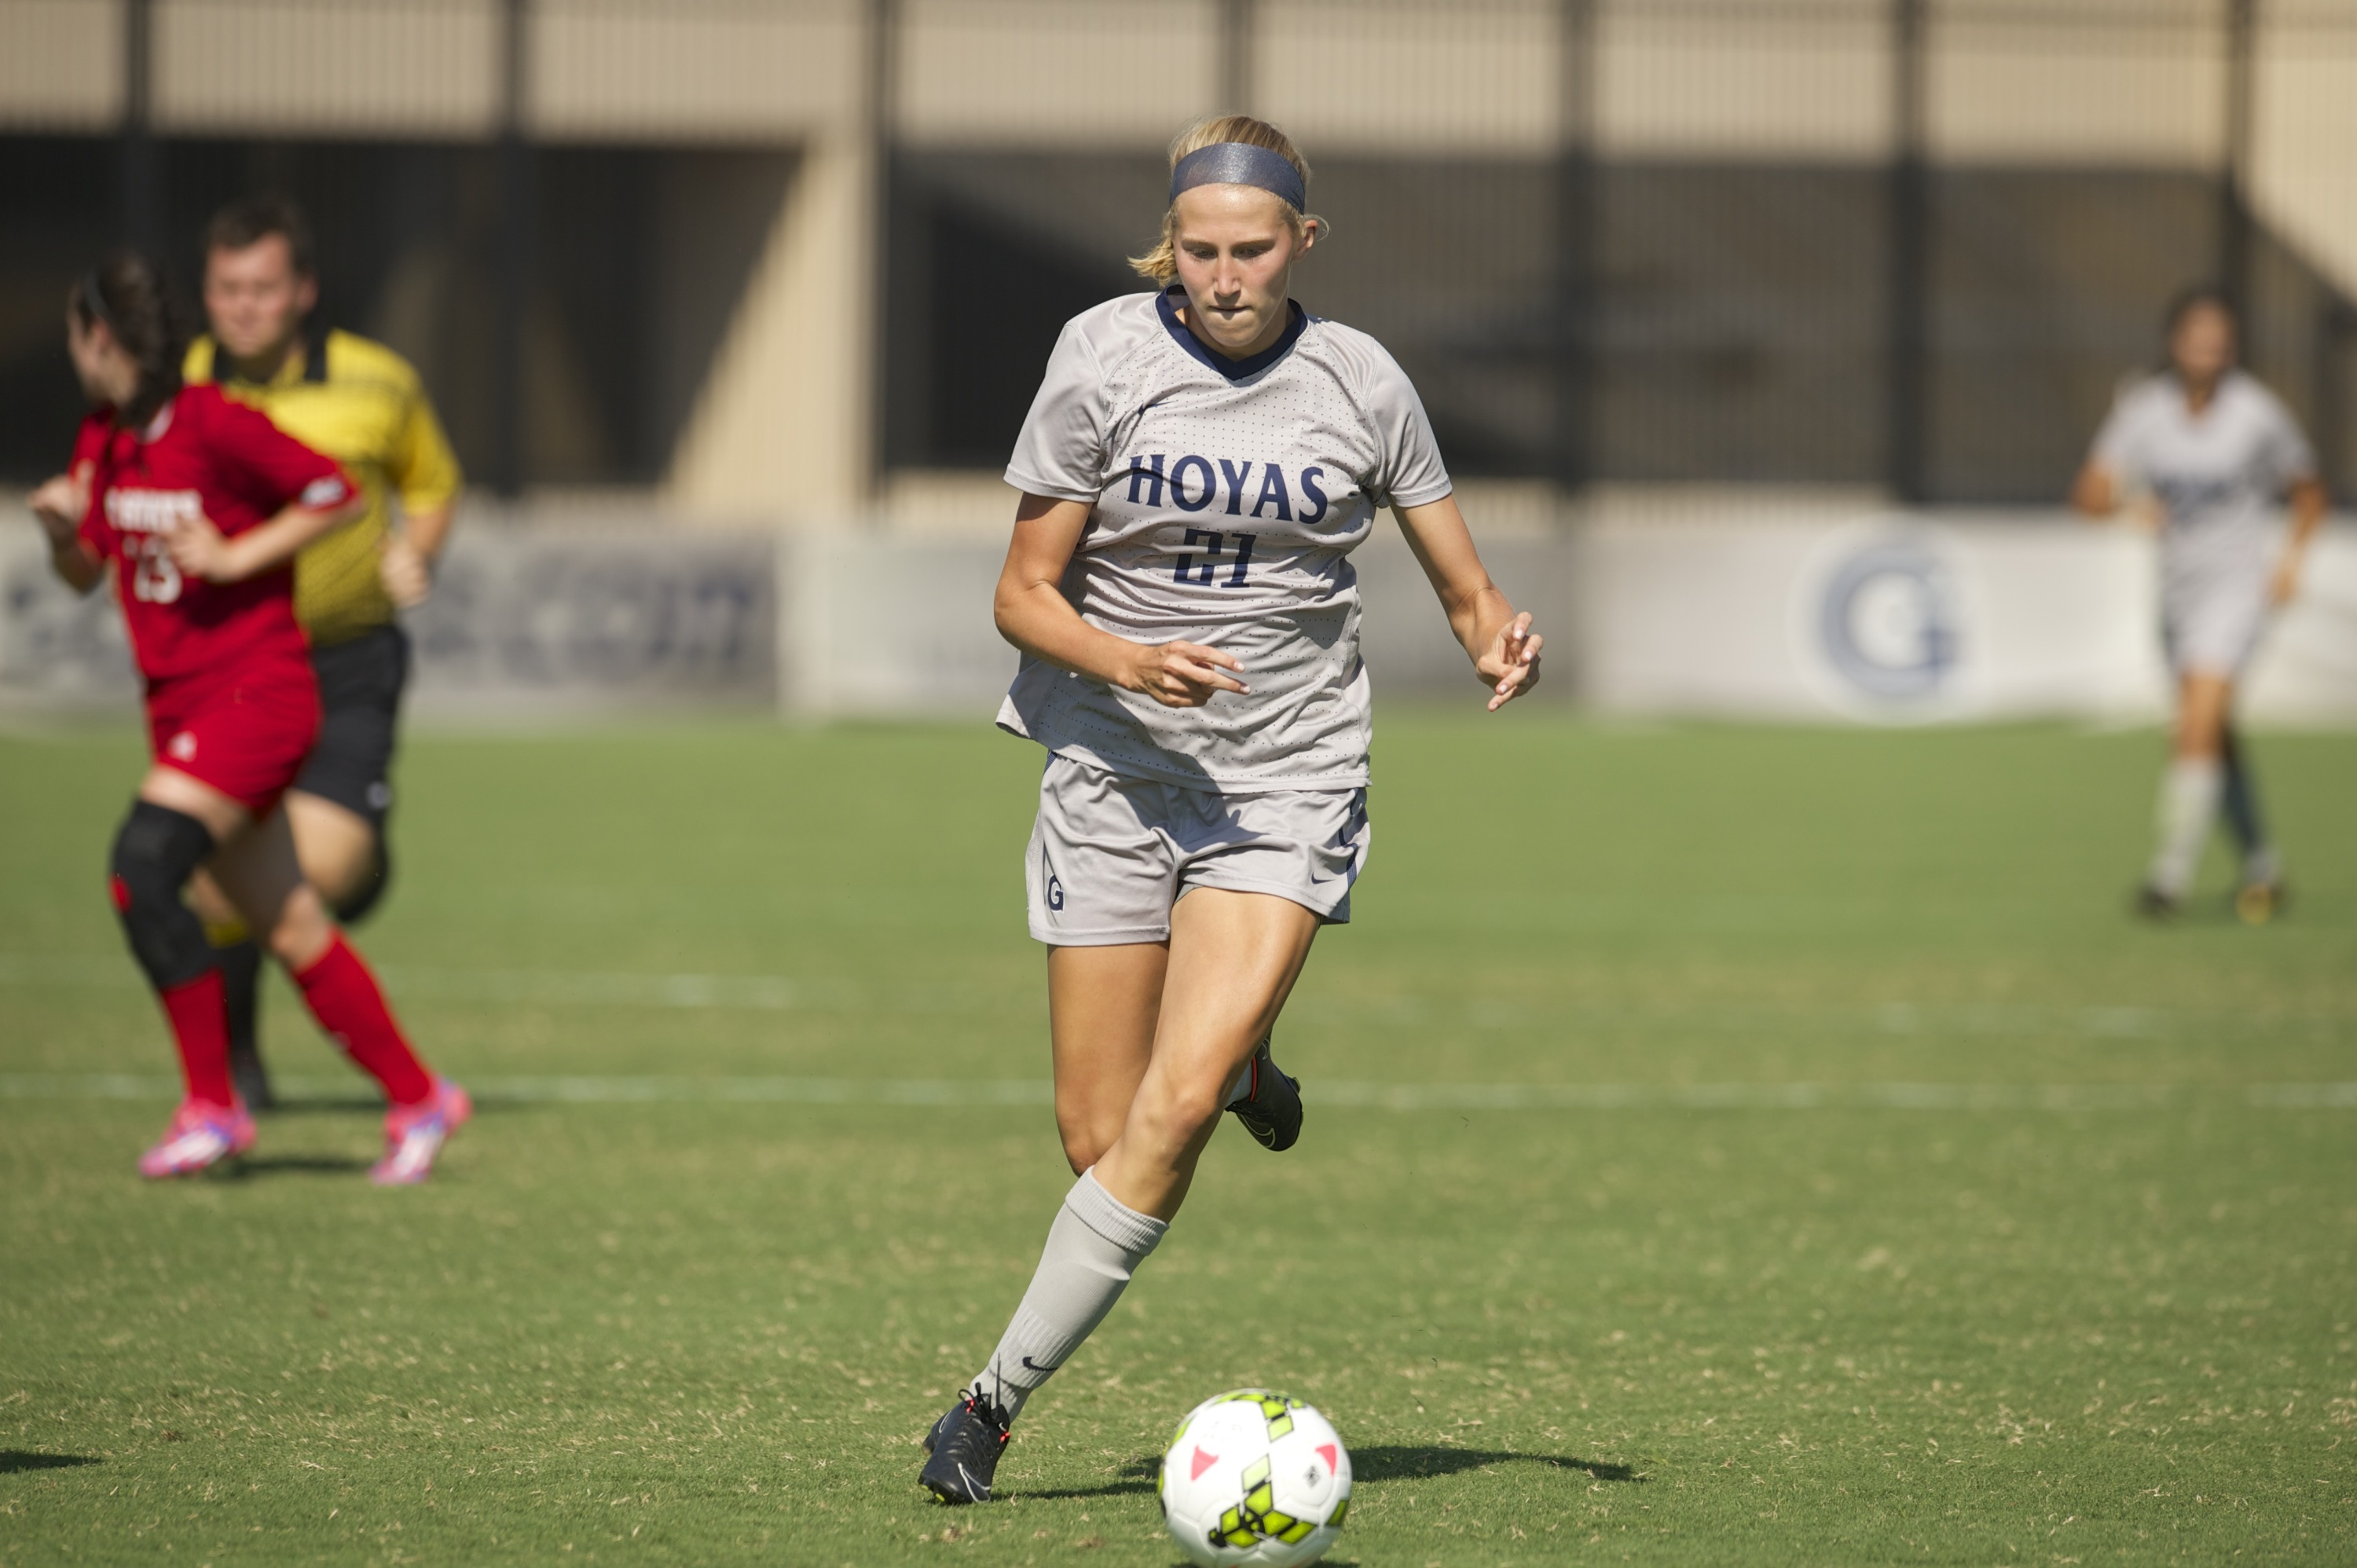 Georgetown University sophomore women's soccer player Grace Damaska was named the BIG EAST Offensive Player of the Week on Monday after helping to lead the Hoyas to a pair of wins over the weekend.